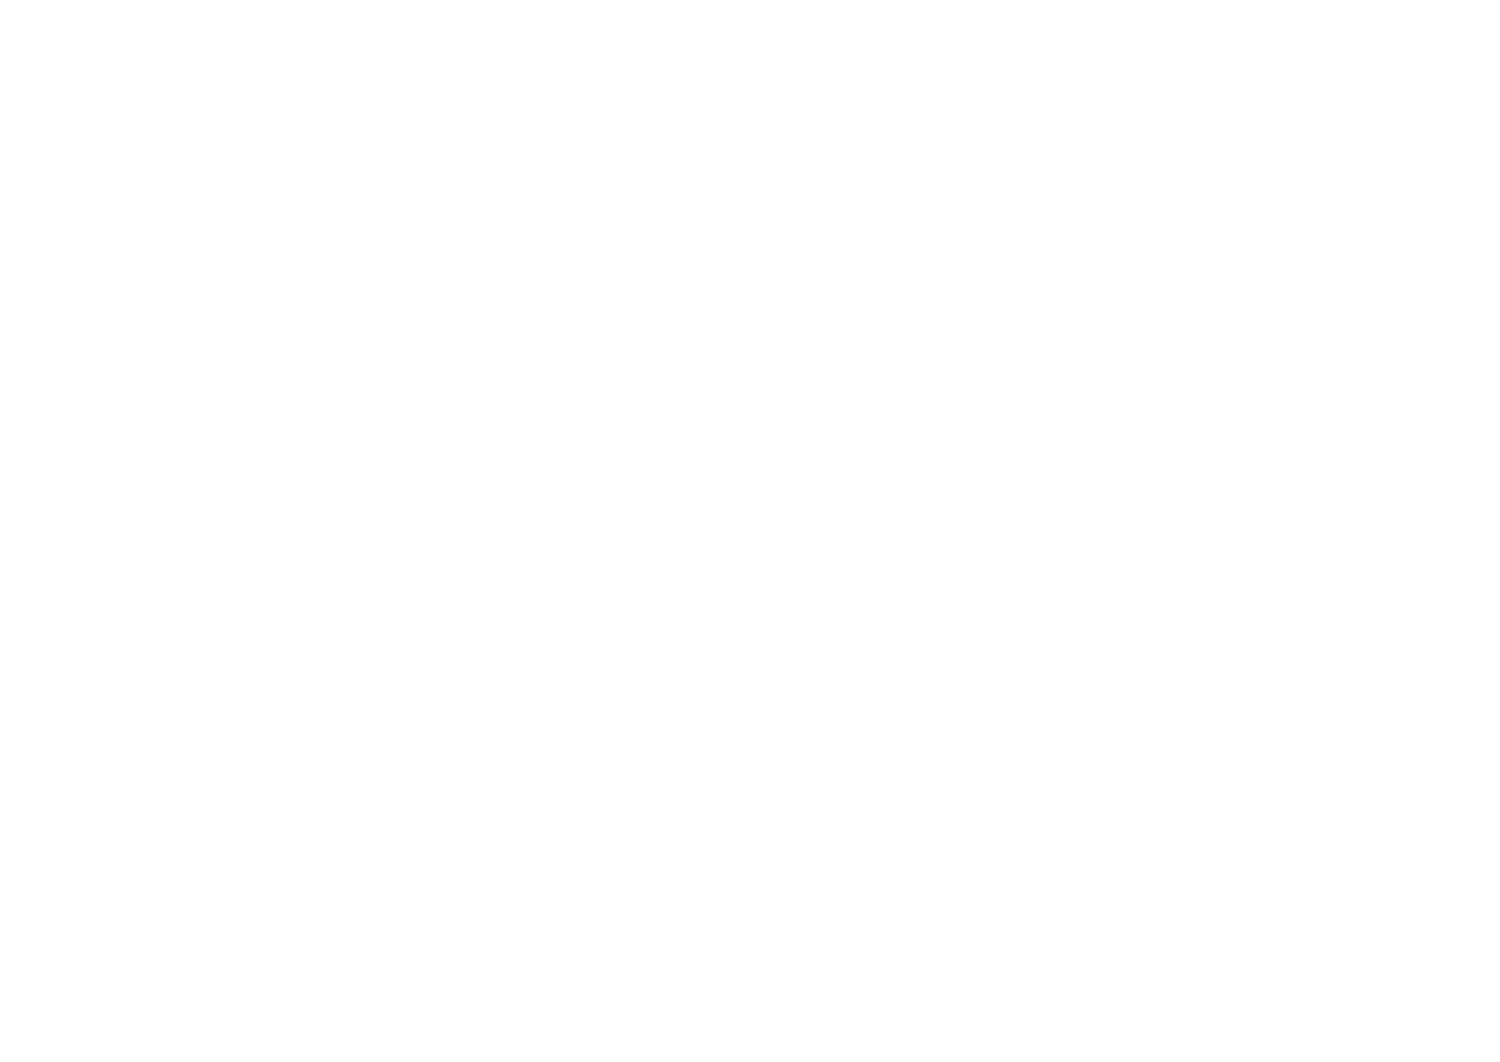 Chicago Marketing Solutions